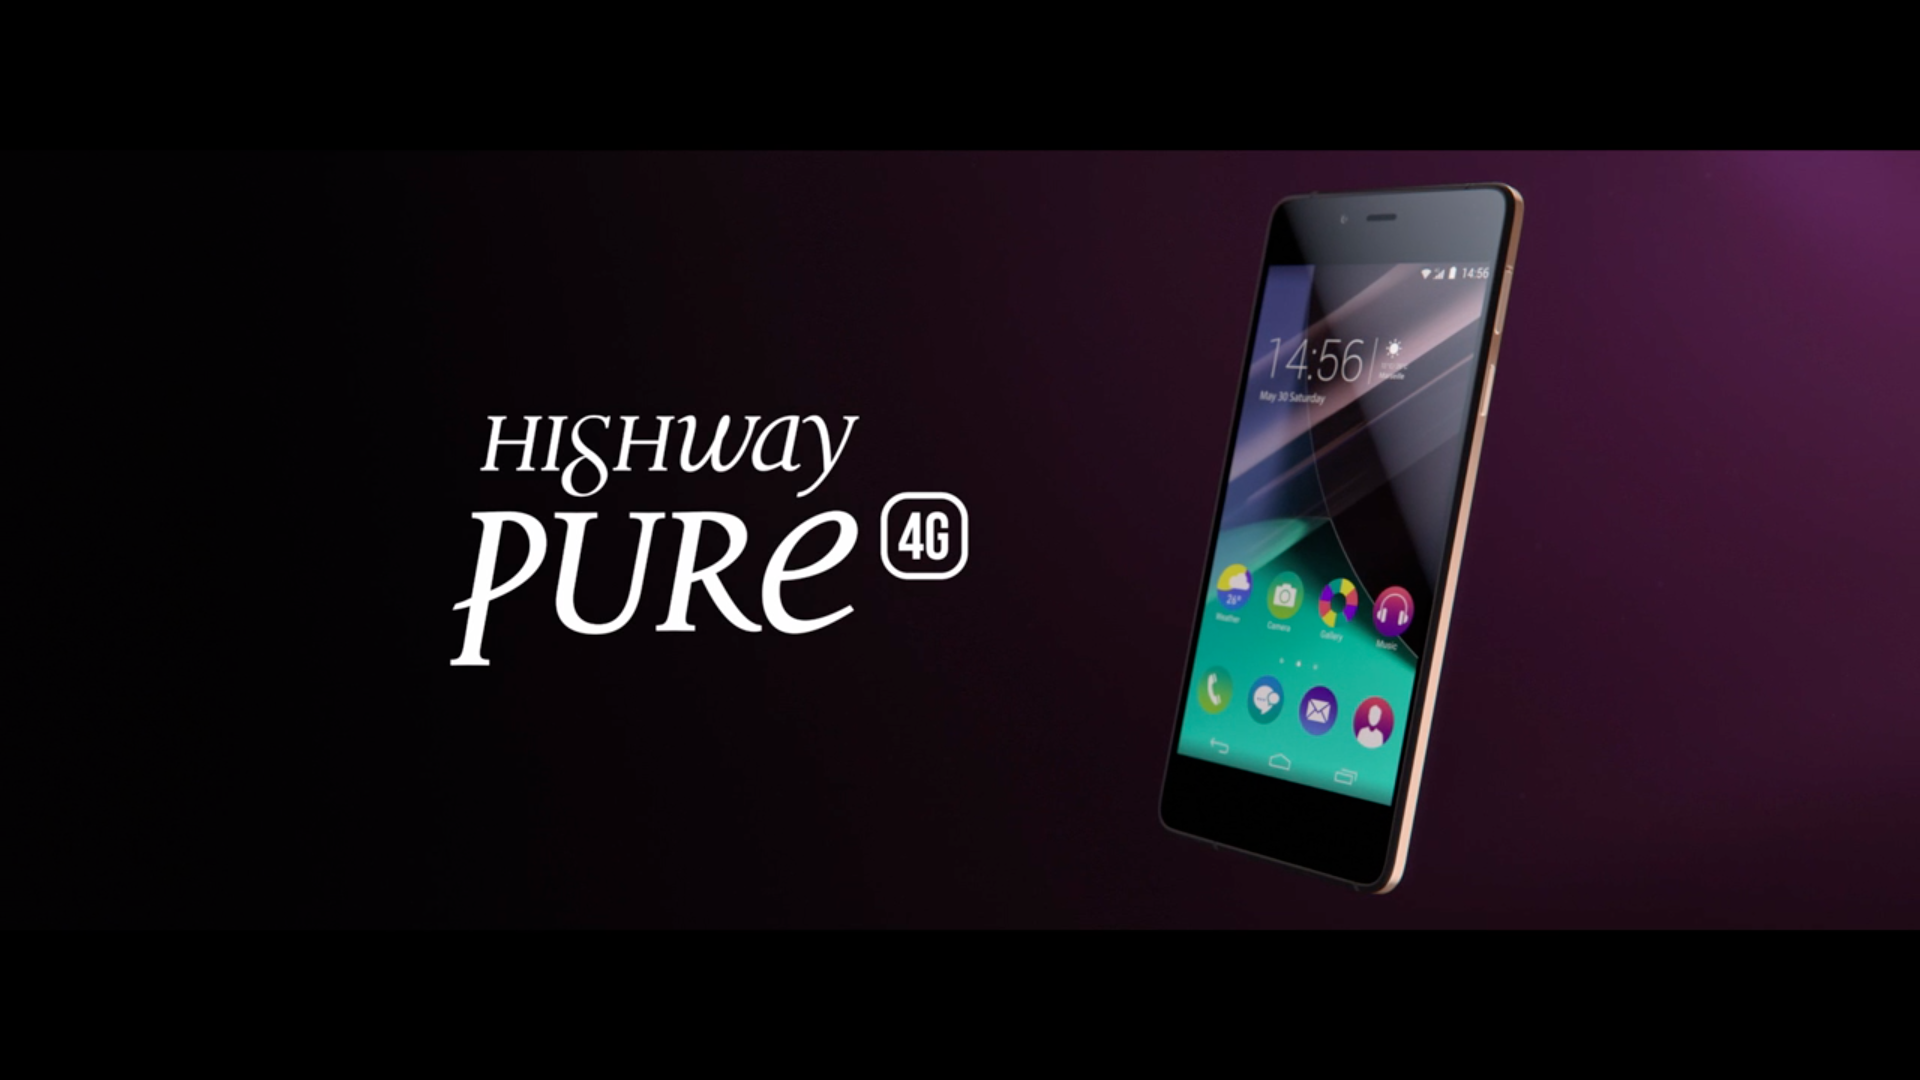 HIGHWAY PURE / 2015 GAME CHANGER